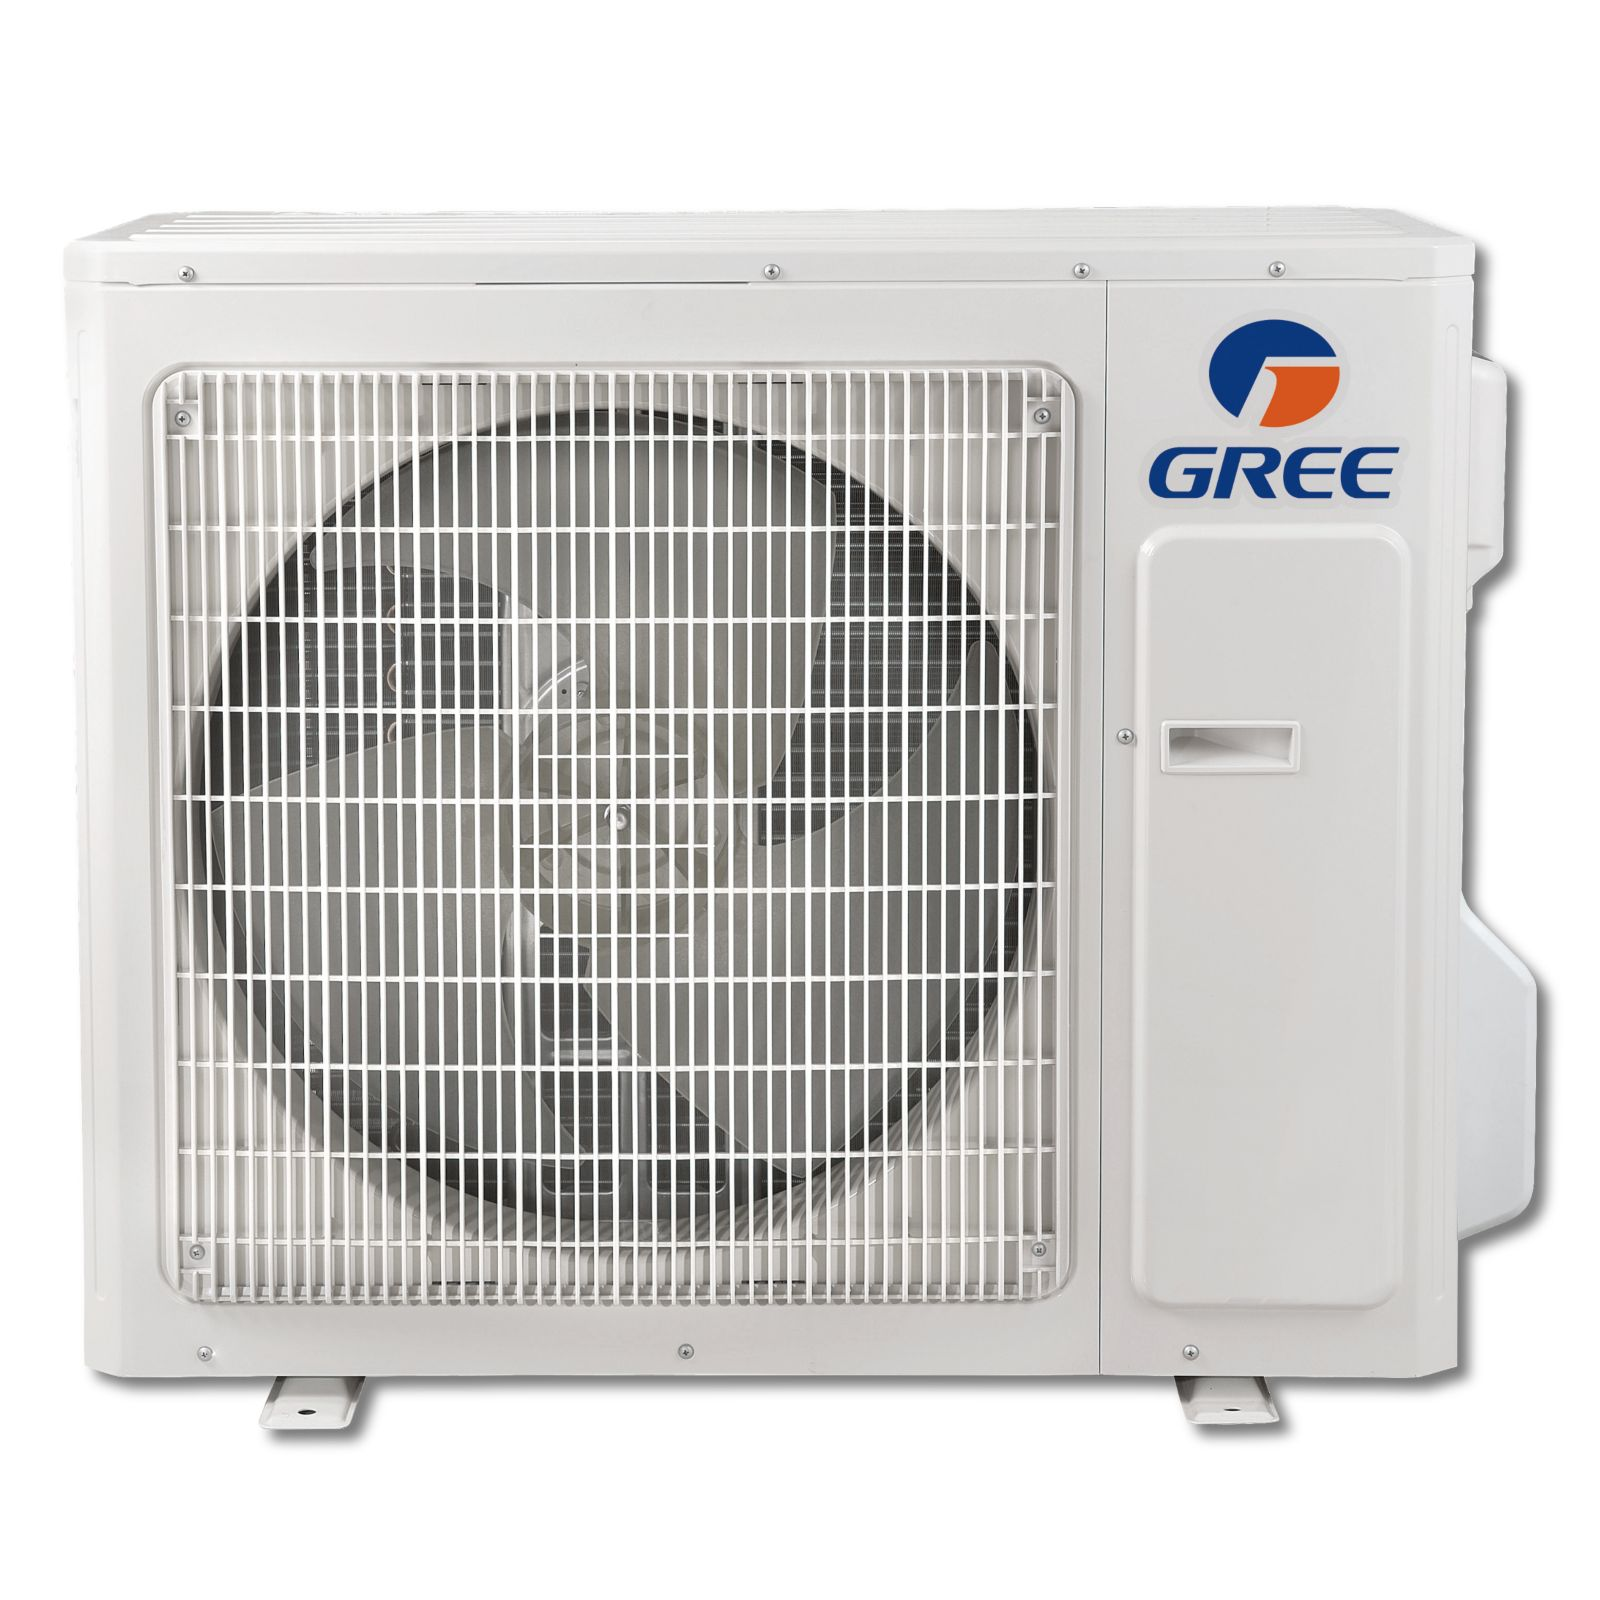 GREE VIR36HP230V1AO - Vireo 36,000 BTU Wall Mounted Inverter Heat Pump Outdoor Unit